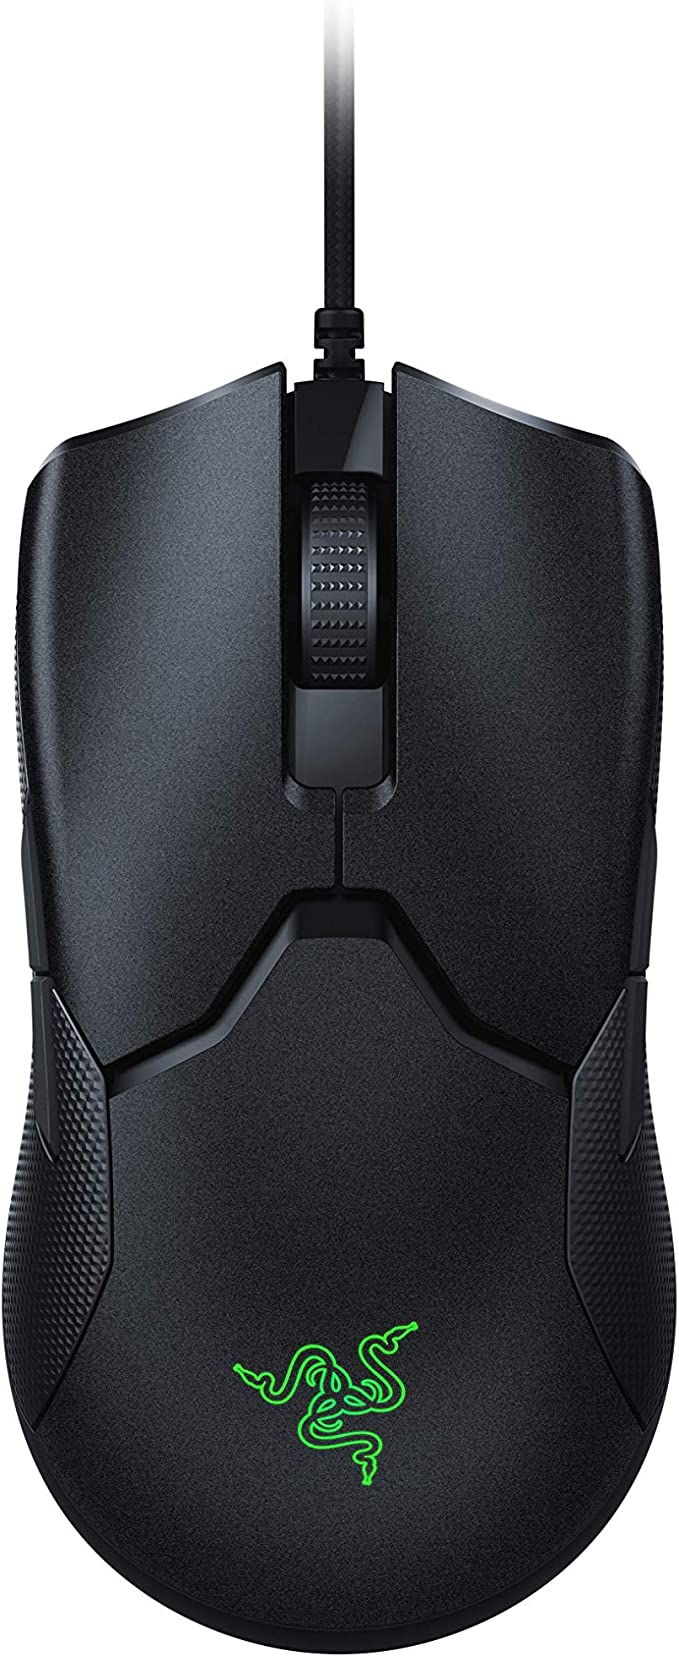 Razer Viper Ultralight Ambidextrous Wired Gaming Mouse Fastest Mouse Switch in Gaming  16000 DPI Optical Sensor  Chroma RGB Lighting  8 Programmable B at Kapruka Online for specialGifts